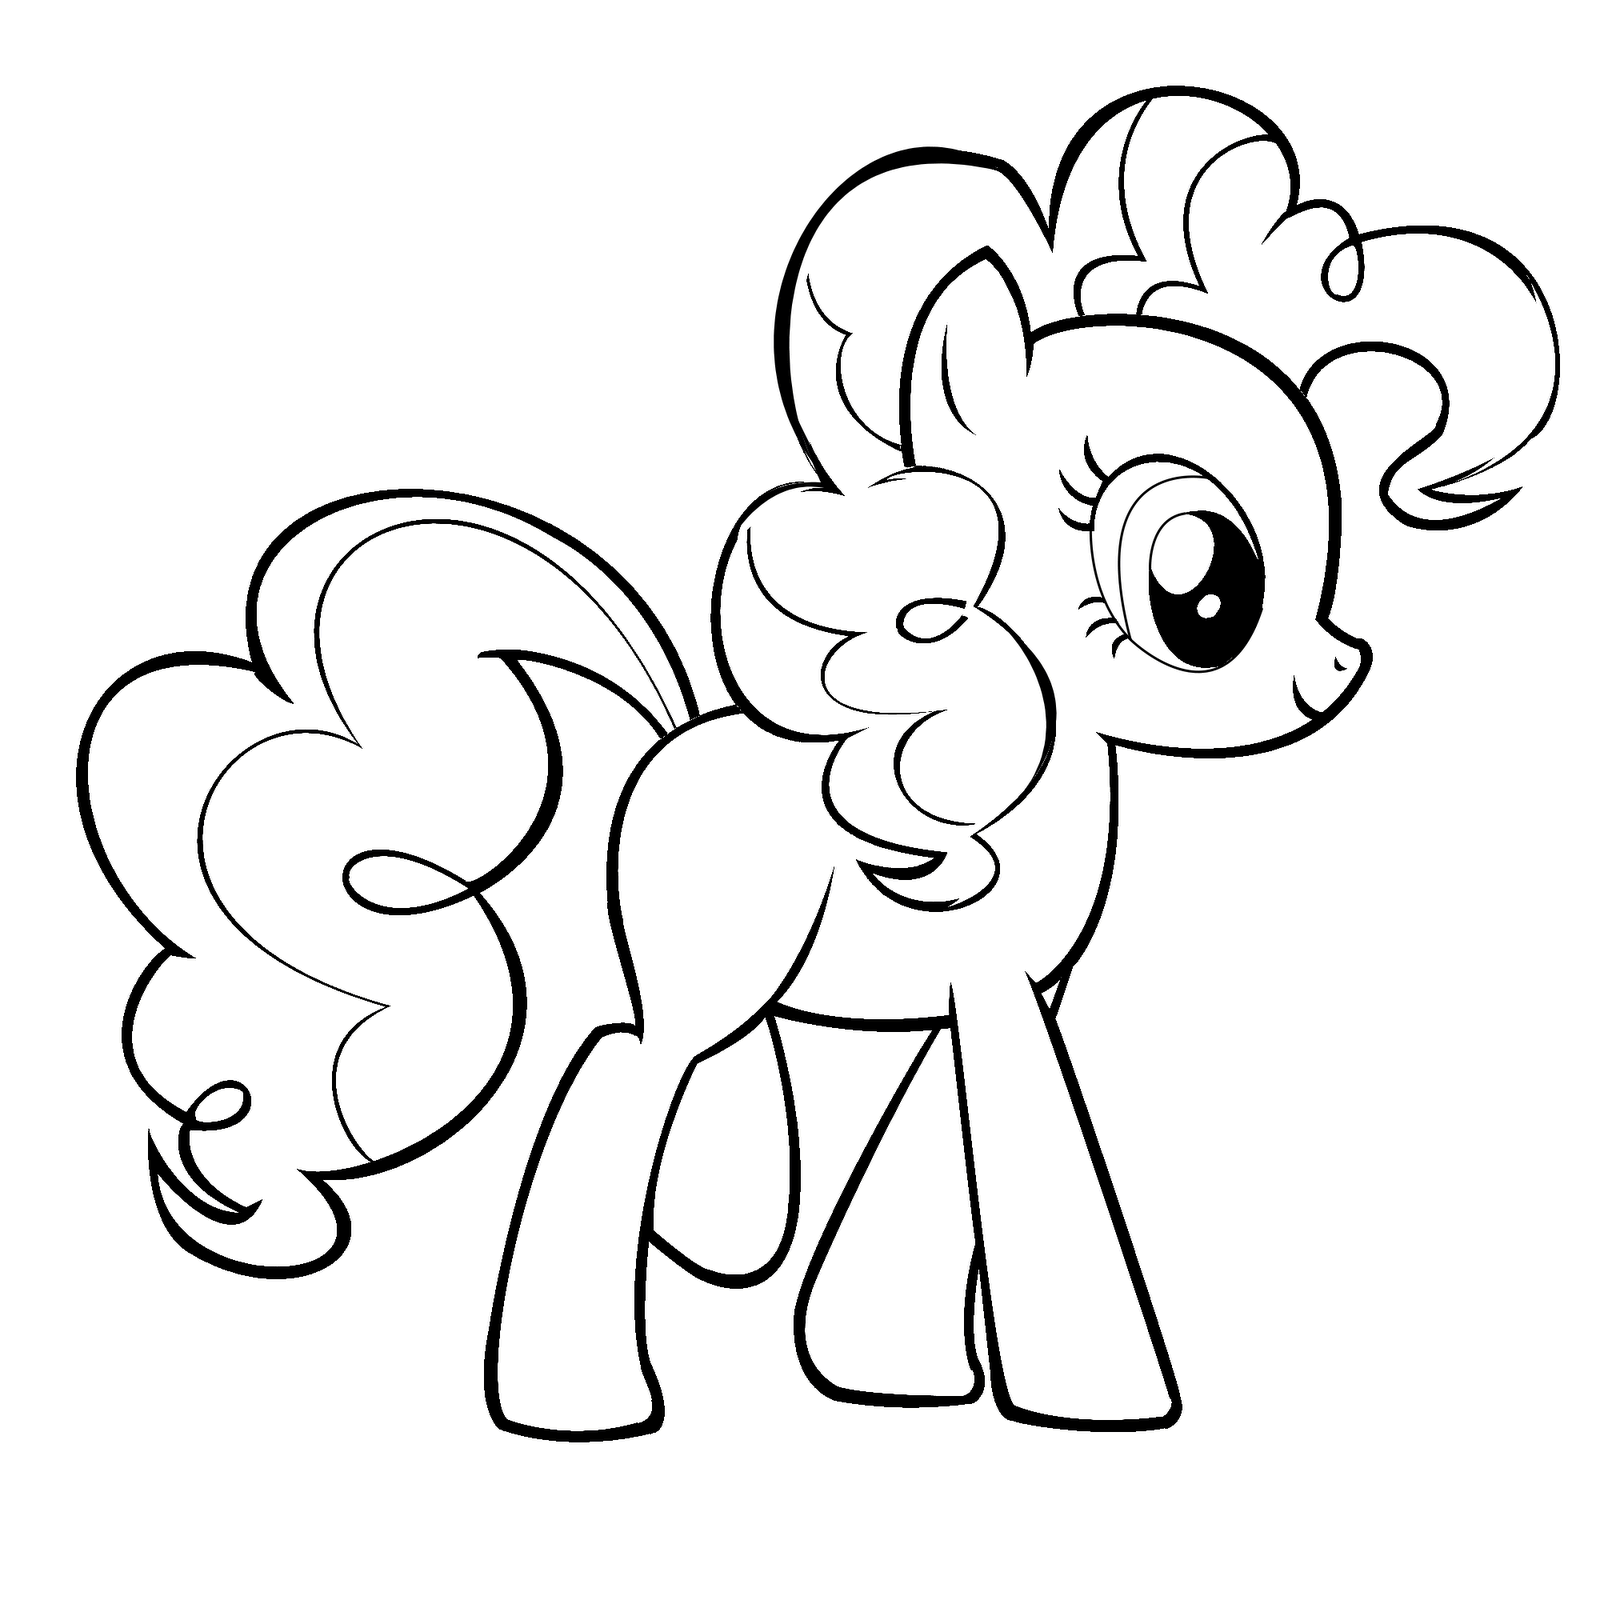 my little pony picture to color my little pony coloring pages my color to picture pony little